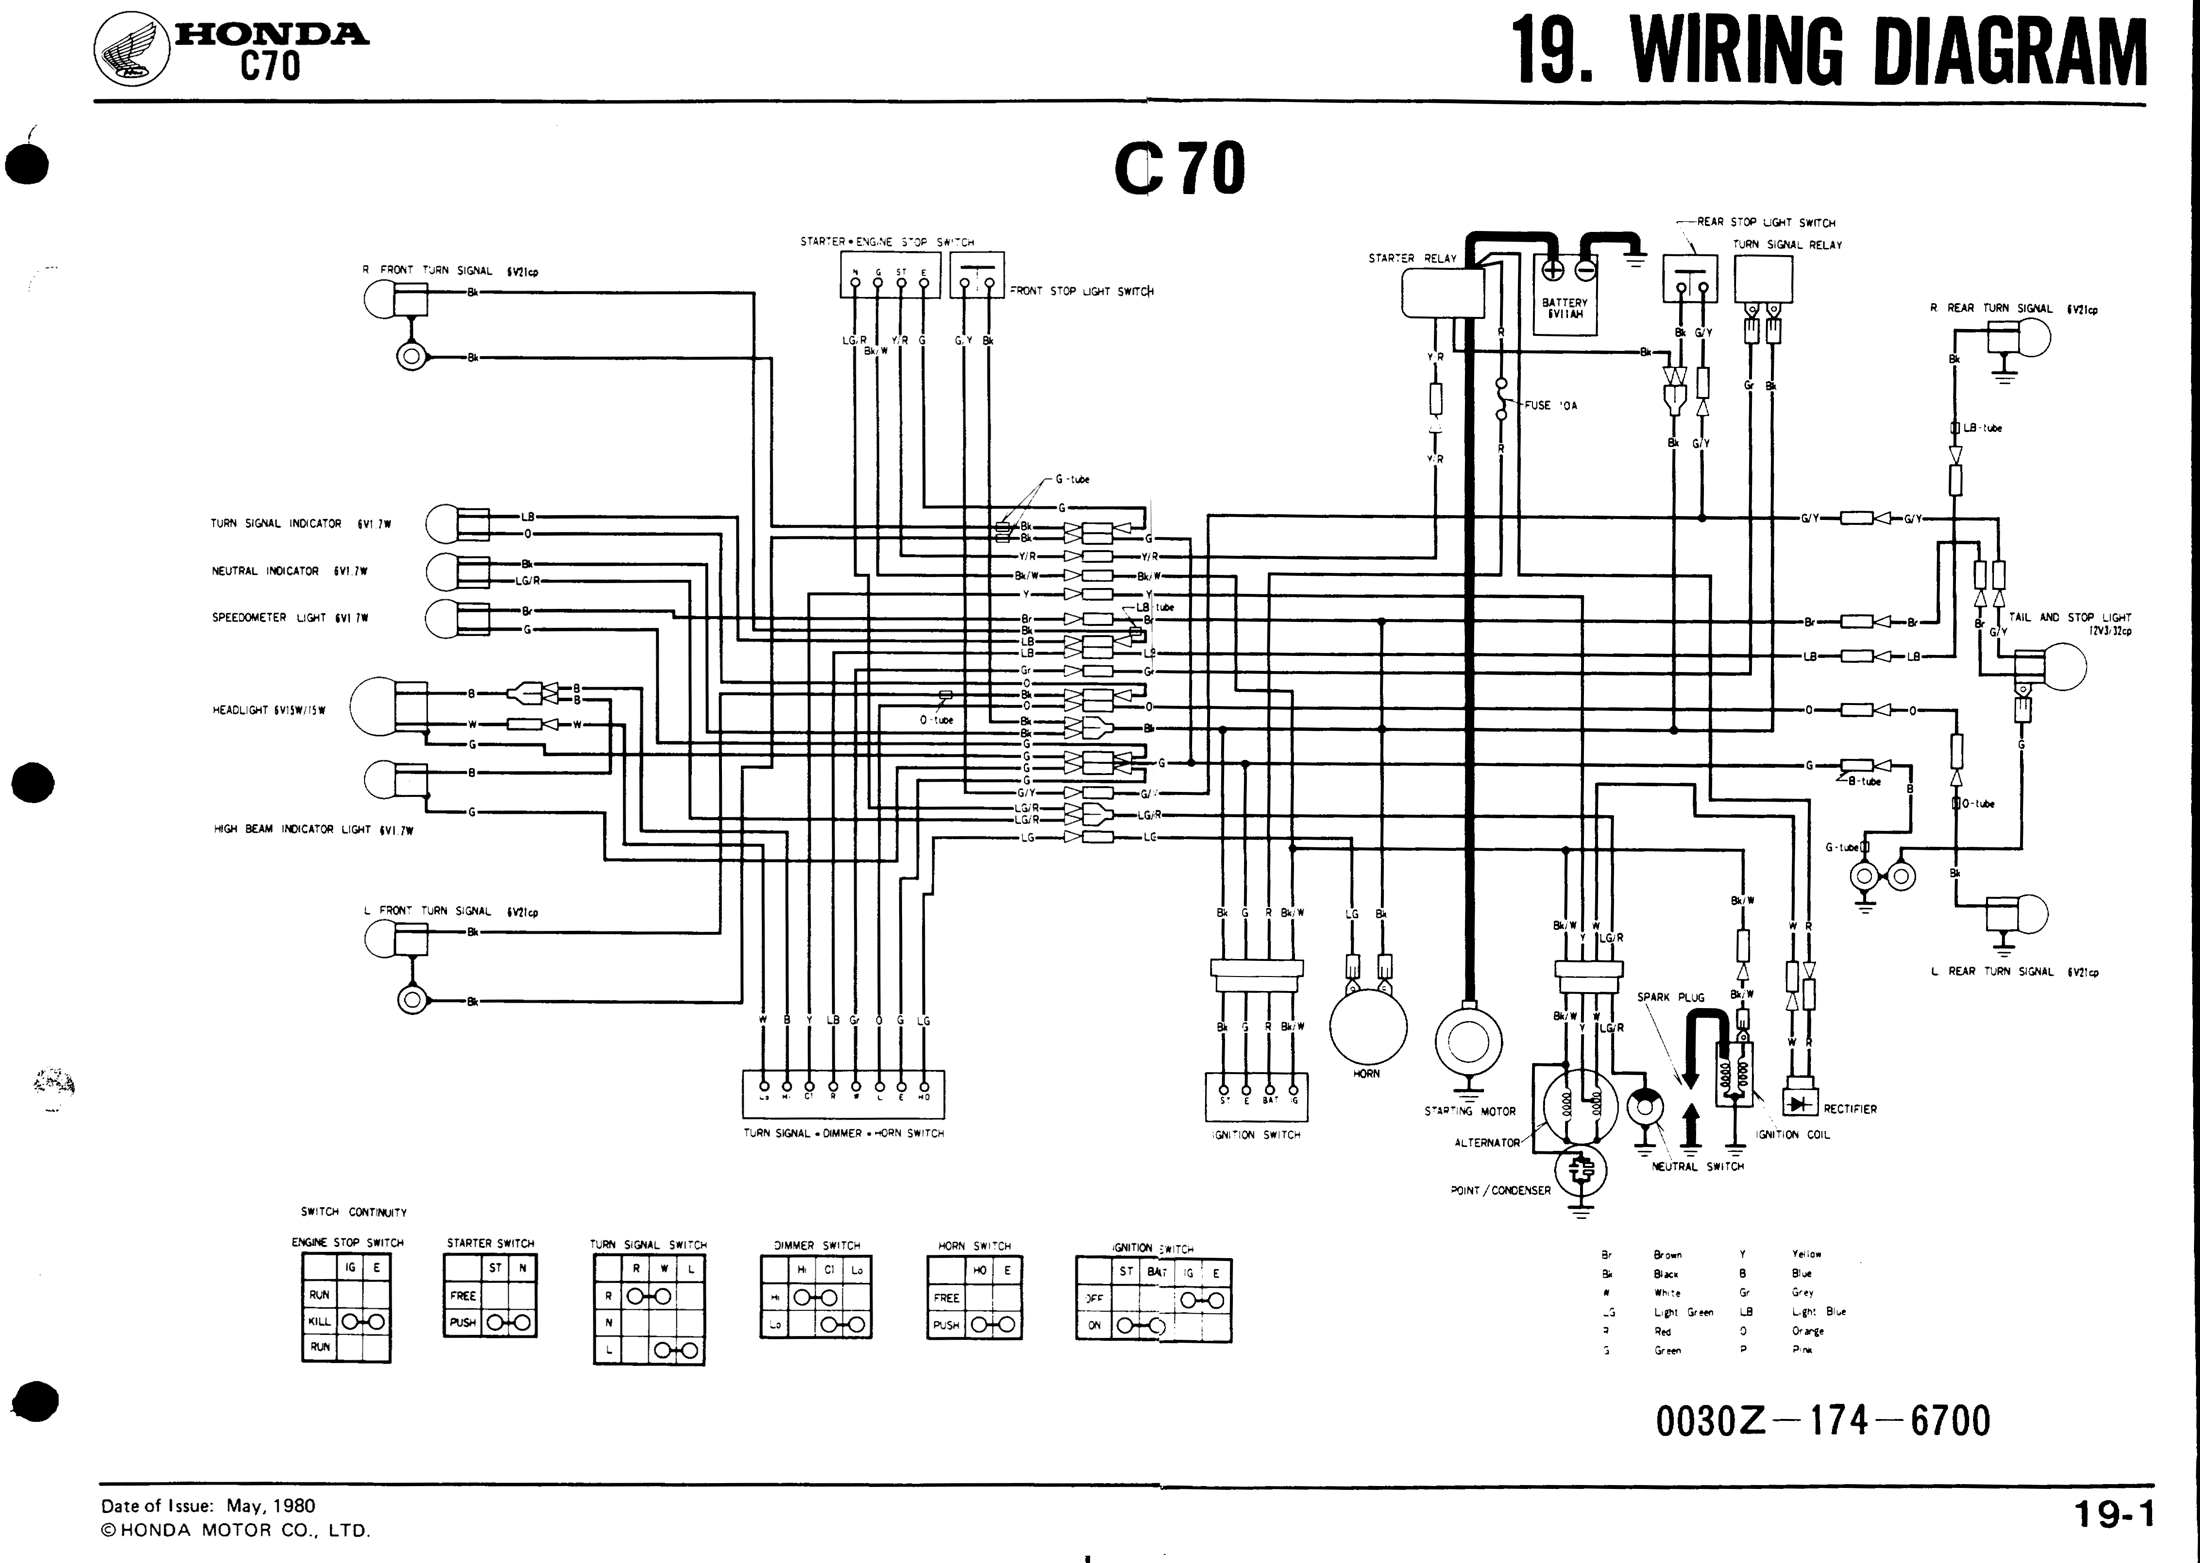 Free Diagram Wiring Diagram Honda C70 Full Version Hd Quality Honda C70 Ilwiring Bandb Veneto It